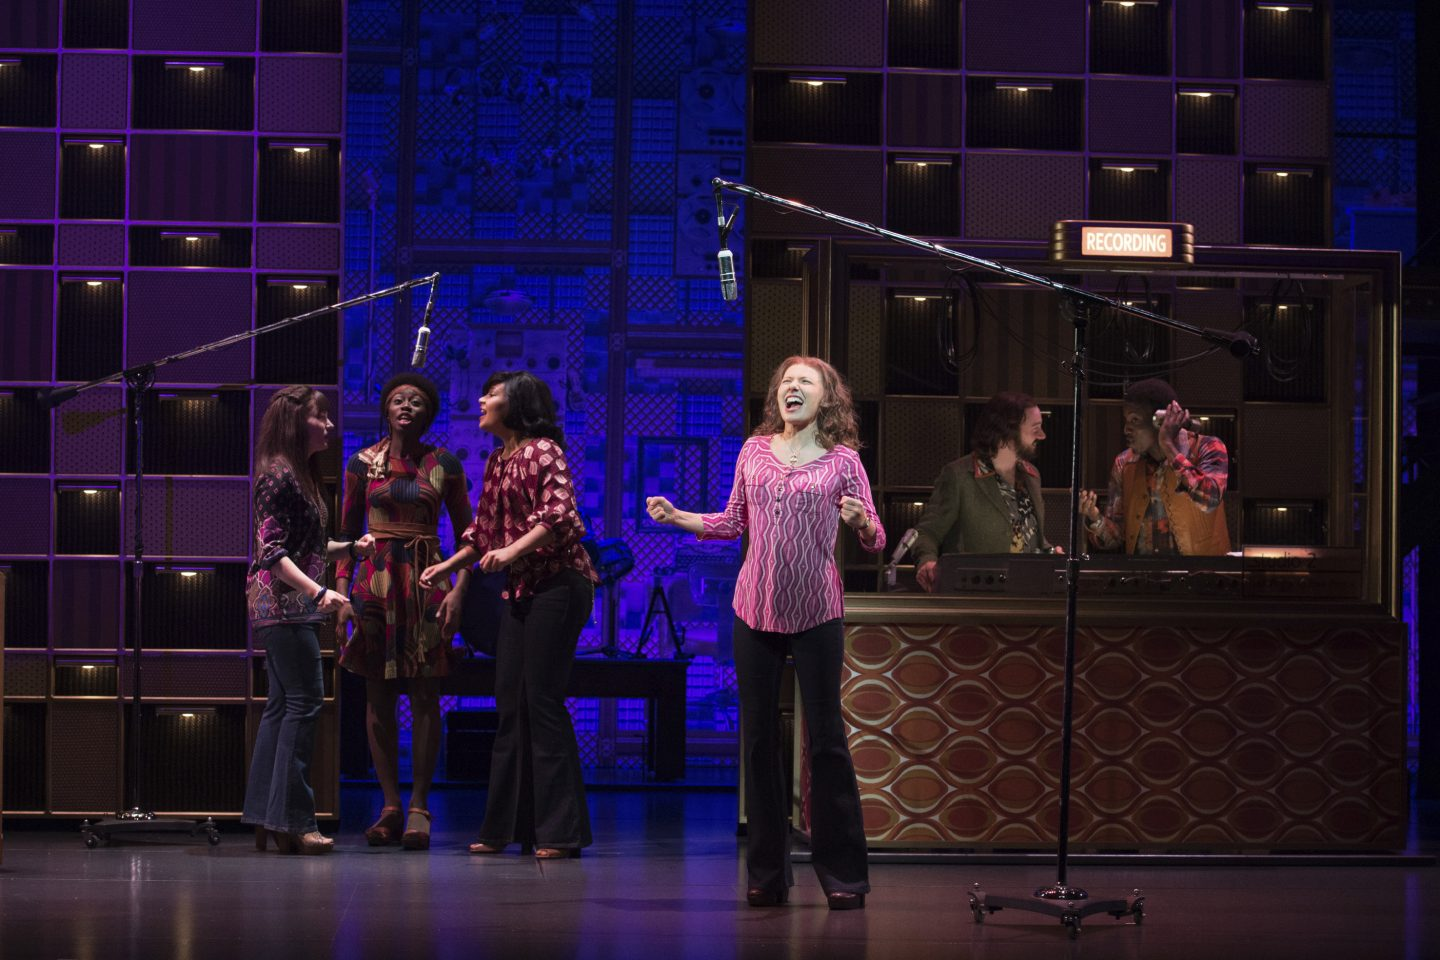 Beautiful: The Carole King Musical at Oxford